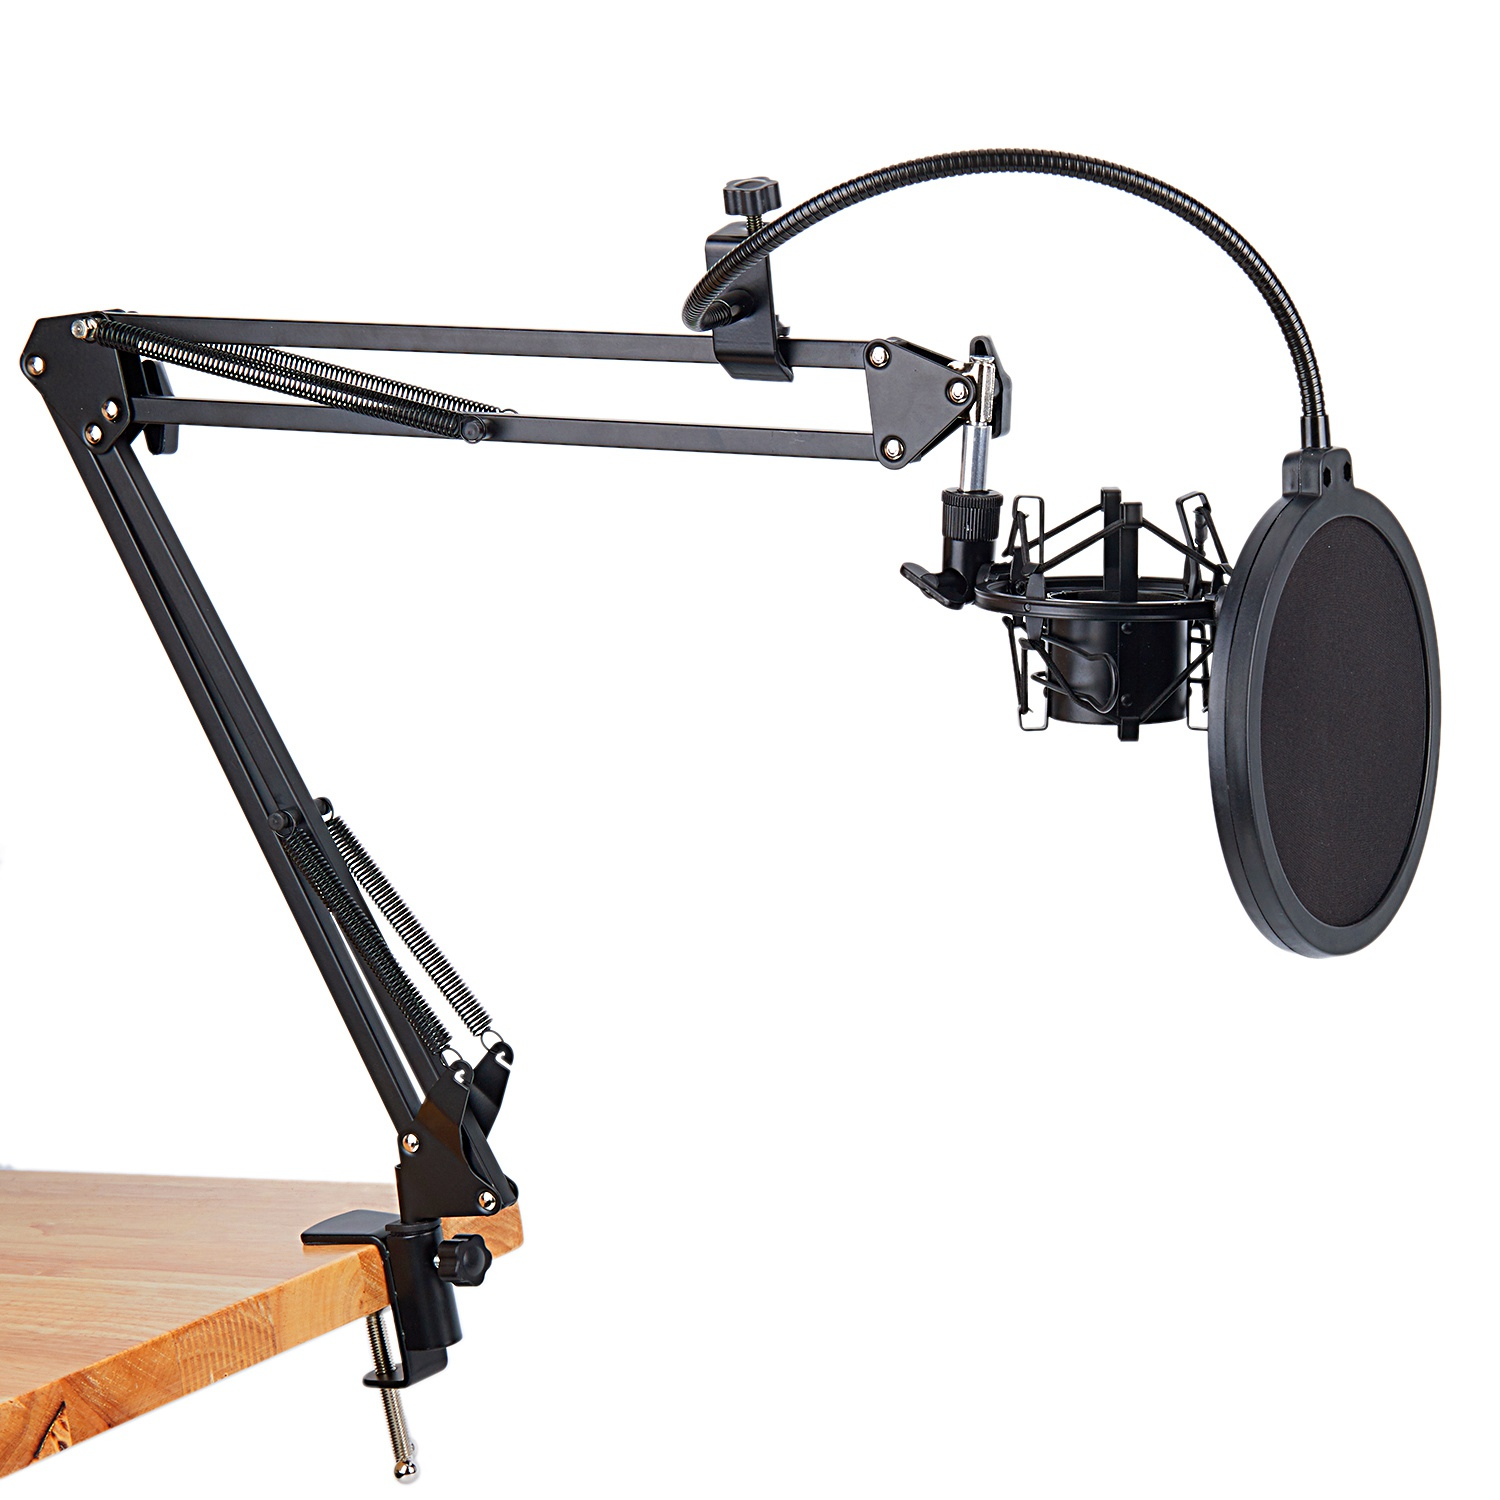 Hot TTKK NB 35 Microphone Scissor Arm Stand and Table Mounting Clamp NW Filter Windscreen Shield